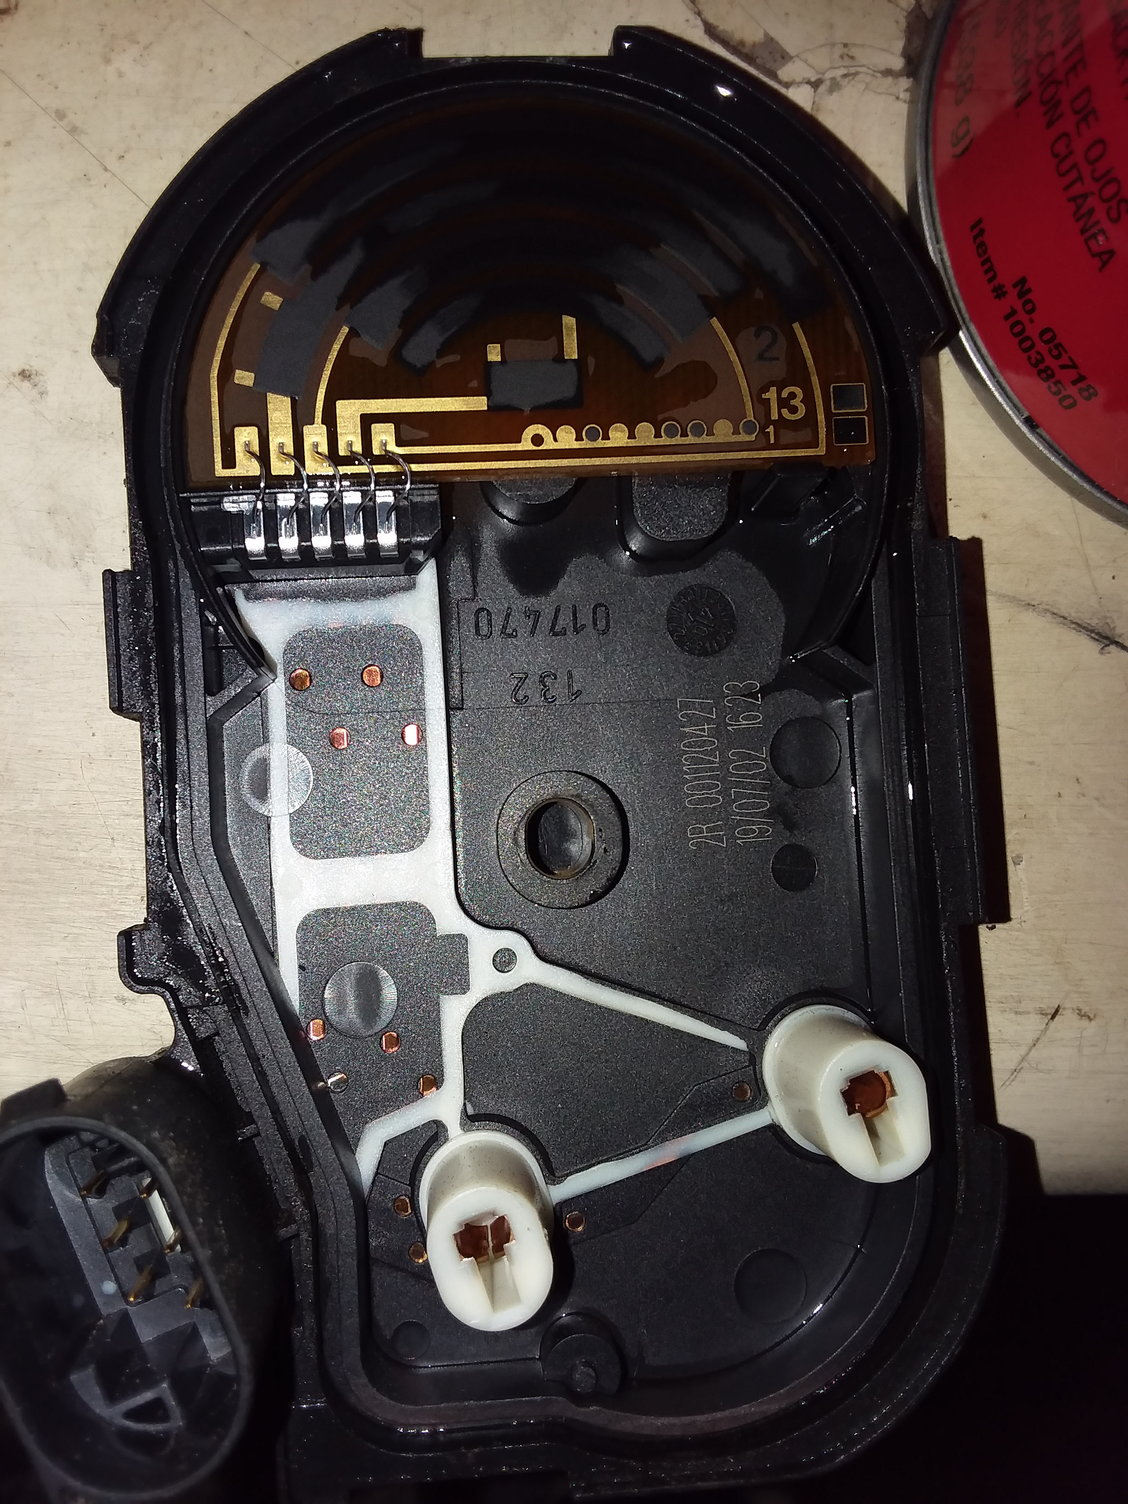 2003 Cadillac Cts Throttle Body Wiring Harness from cimg9.ibsrv.net